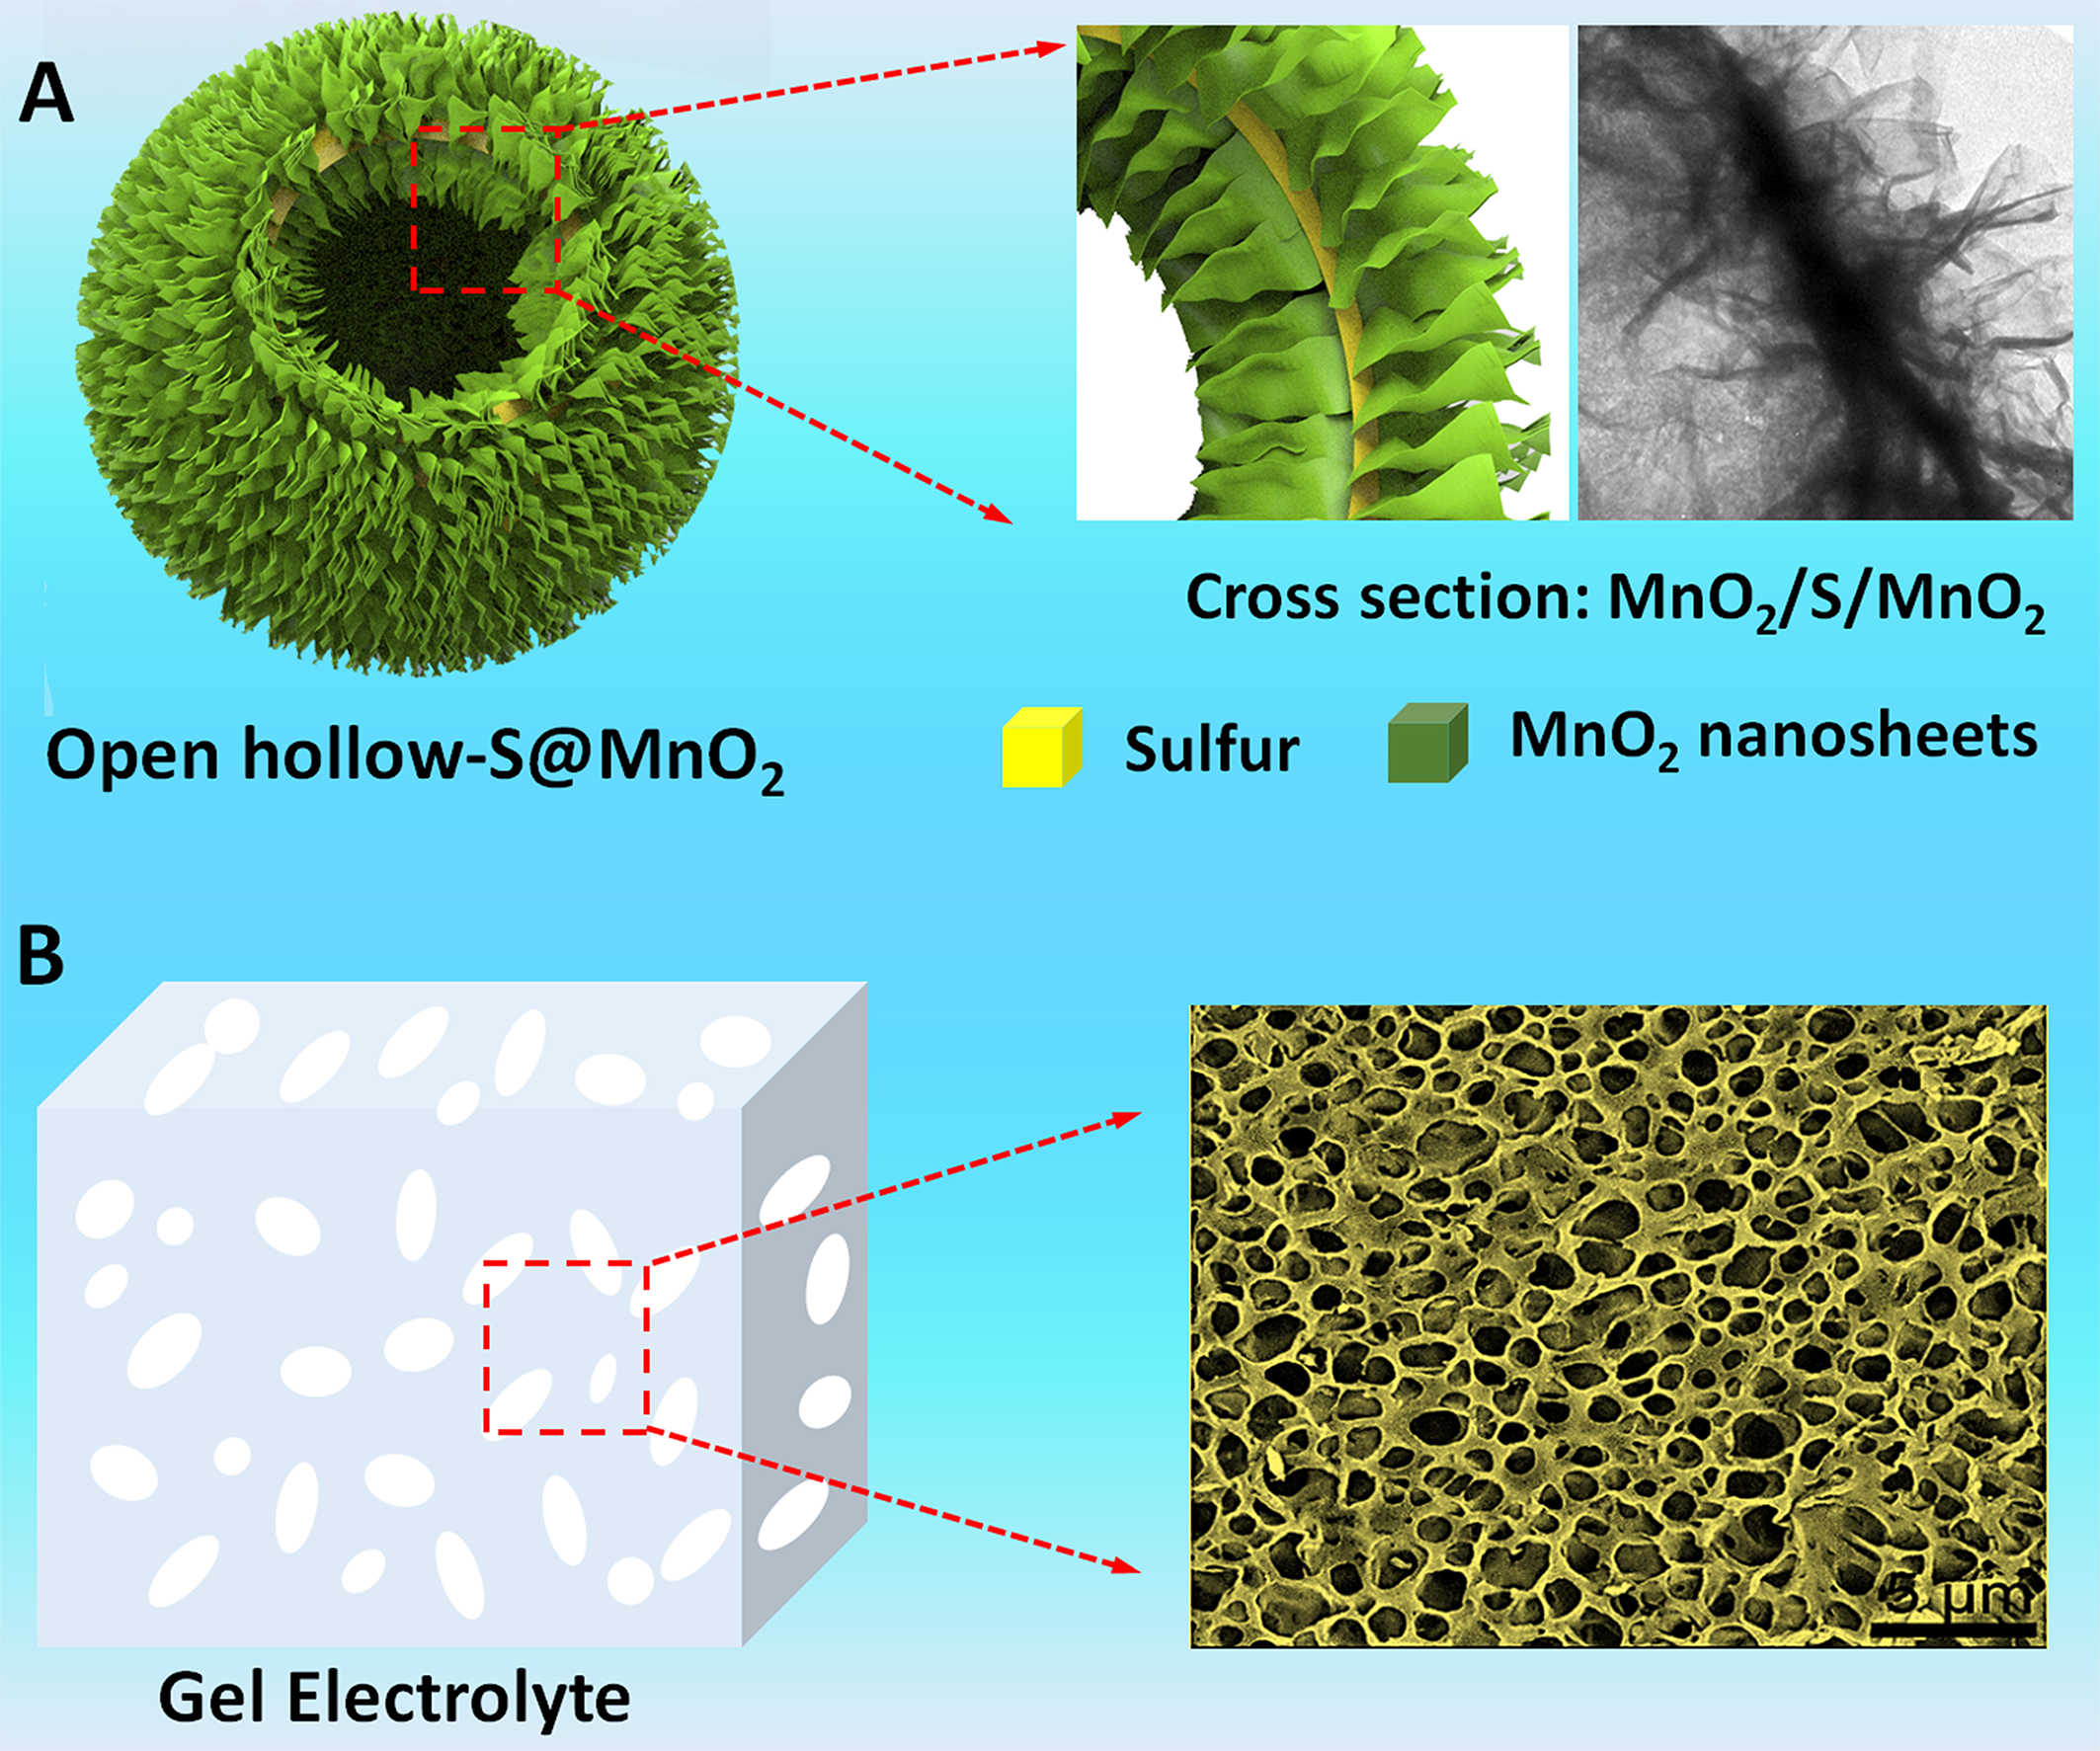 New Generation of Lithium Sulfur Battery Based on Nanostructured Open-Hollow Sulfur@MnO2 Cathode